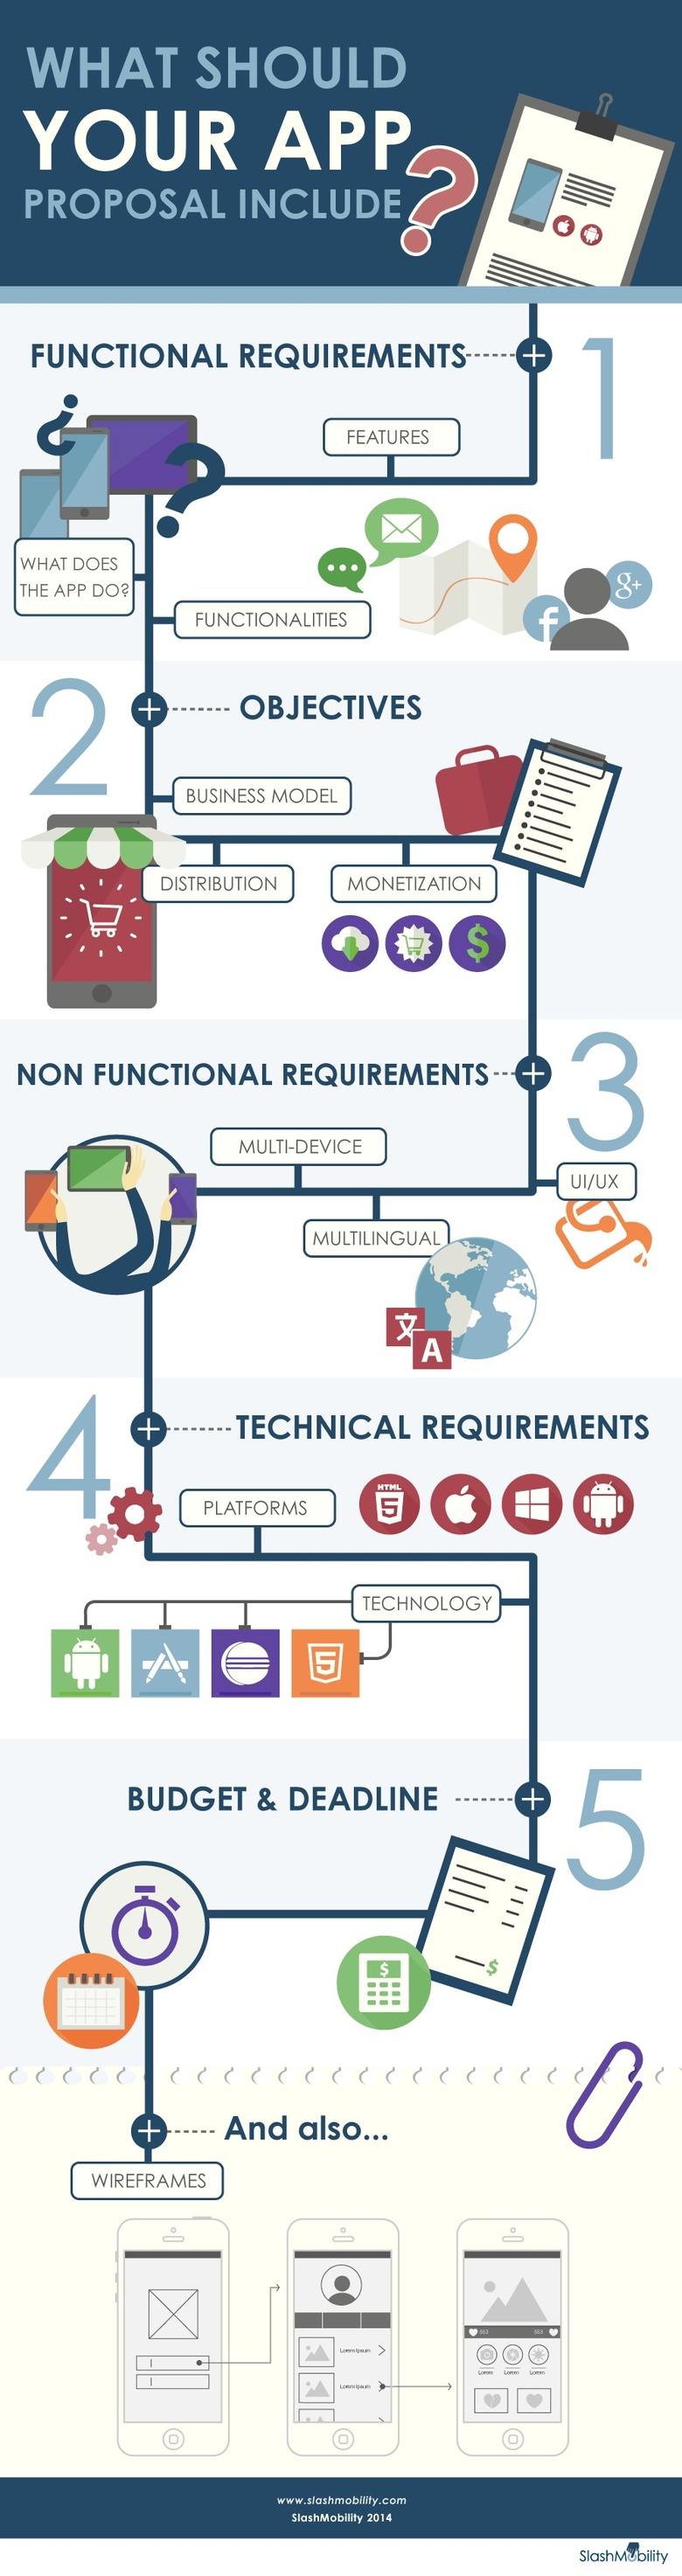 Infographic: What should include your proposal app?